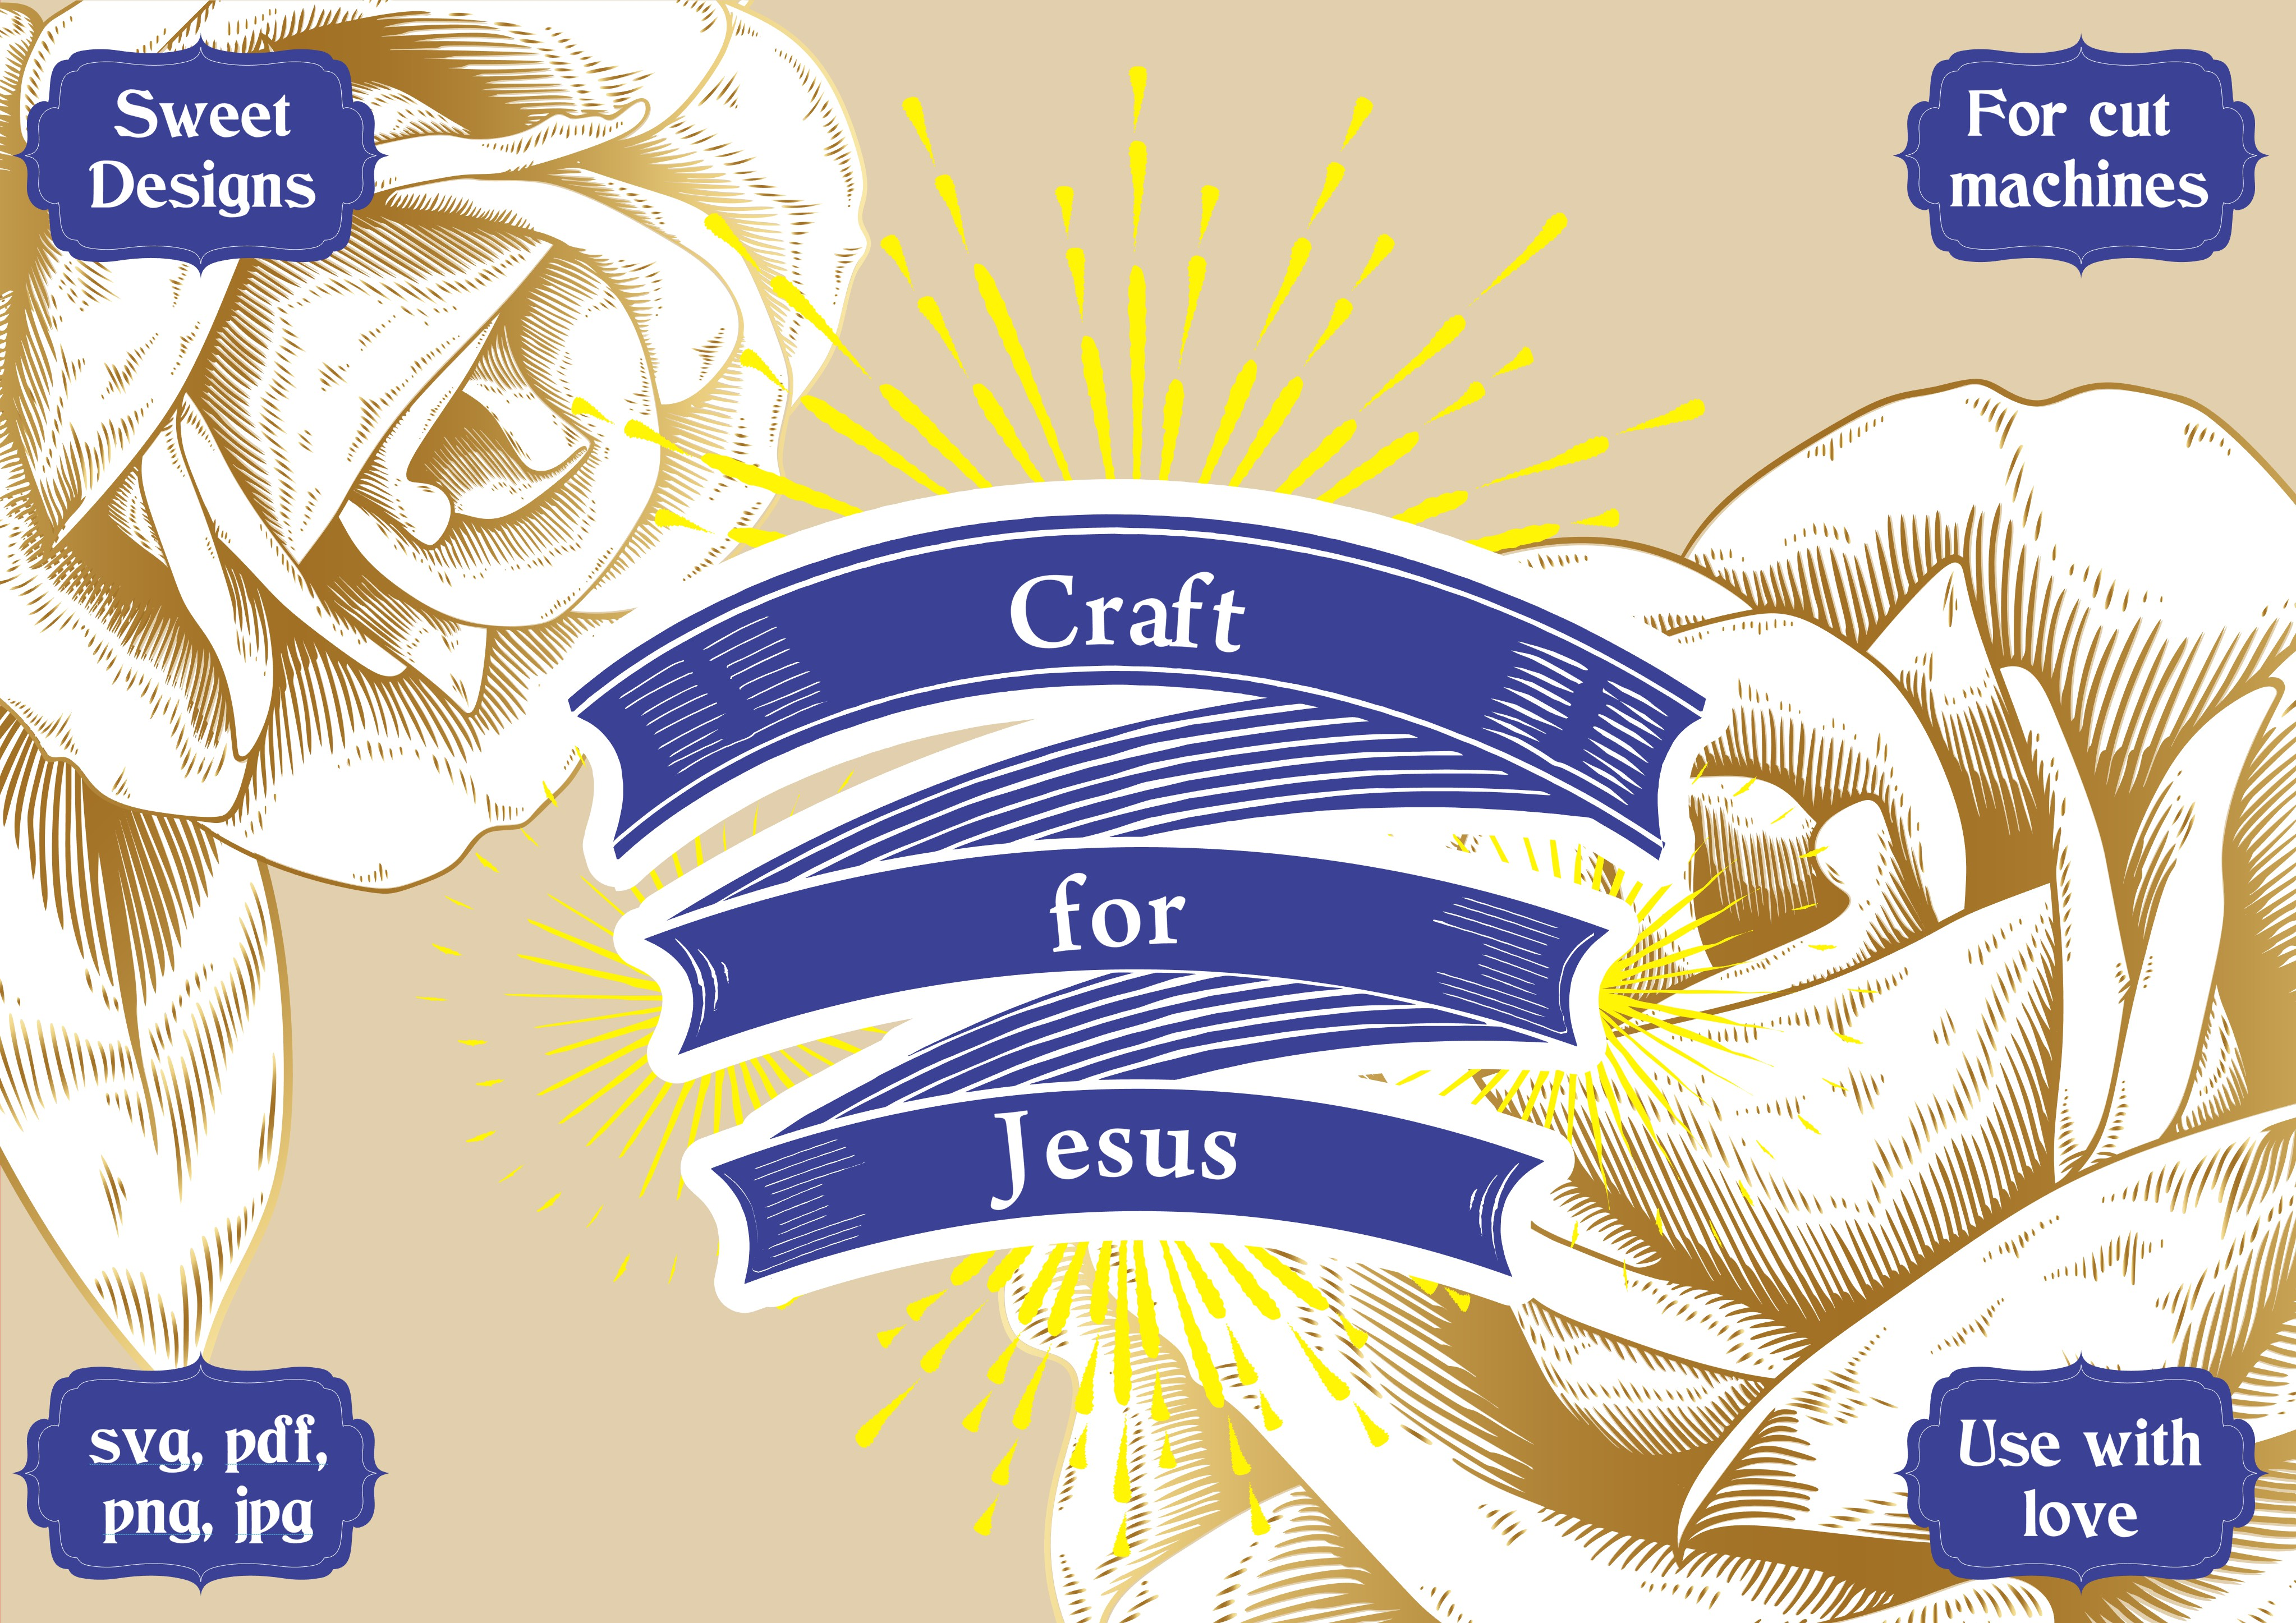 Download Free Craft For Jesus Graphic By Jgalluccio Creative Fabrica for Cricut Explore, Silhouette and other cutting machines.